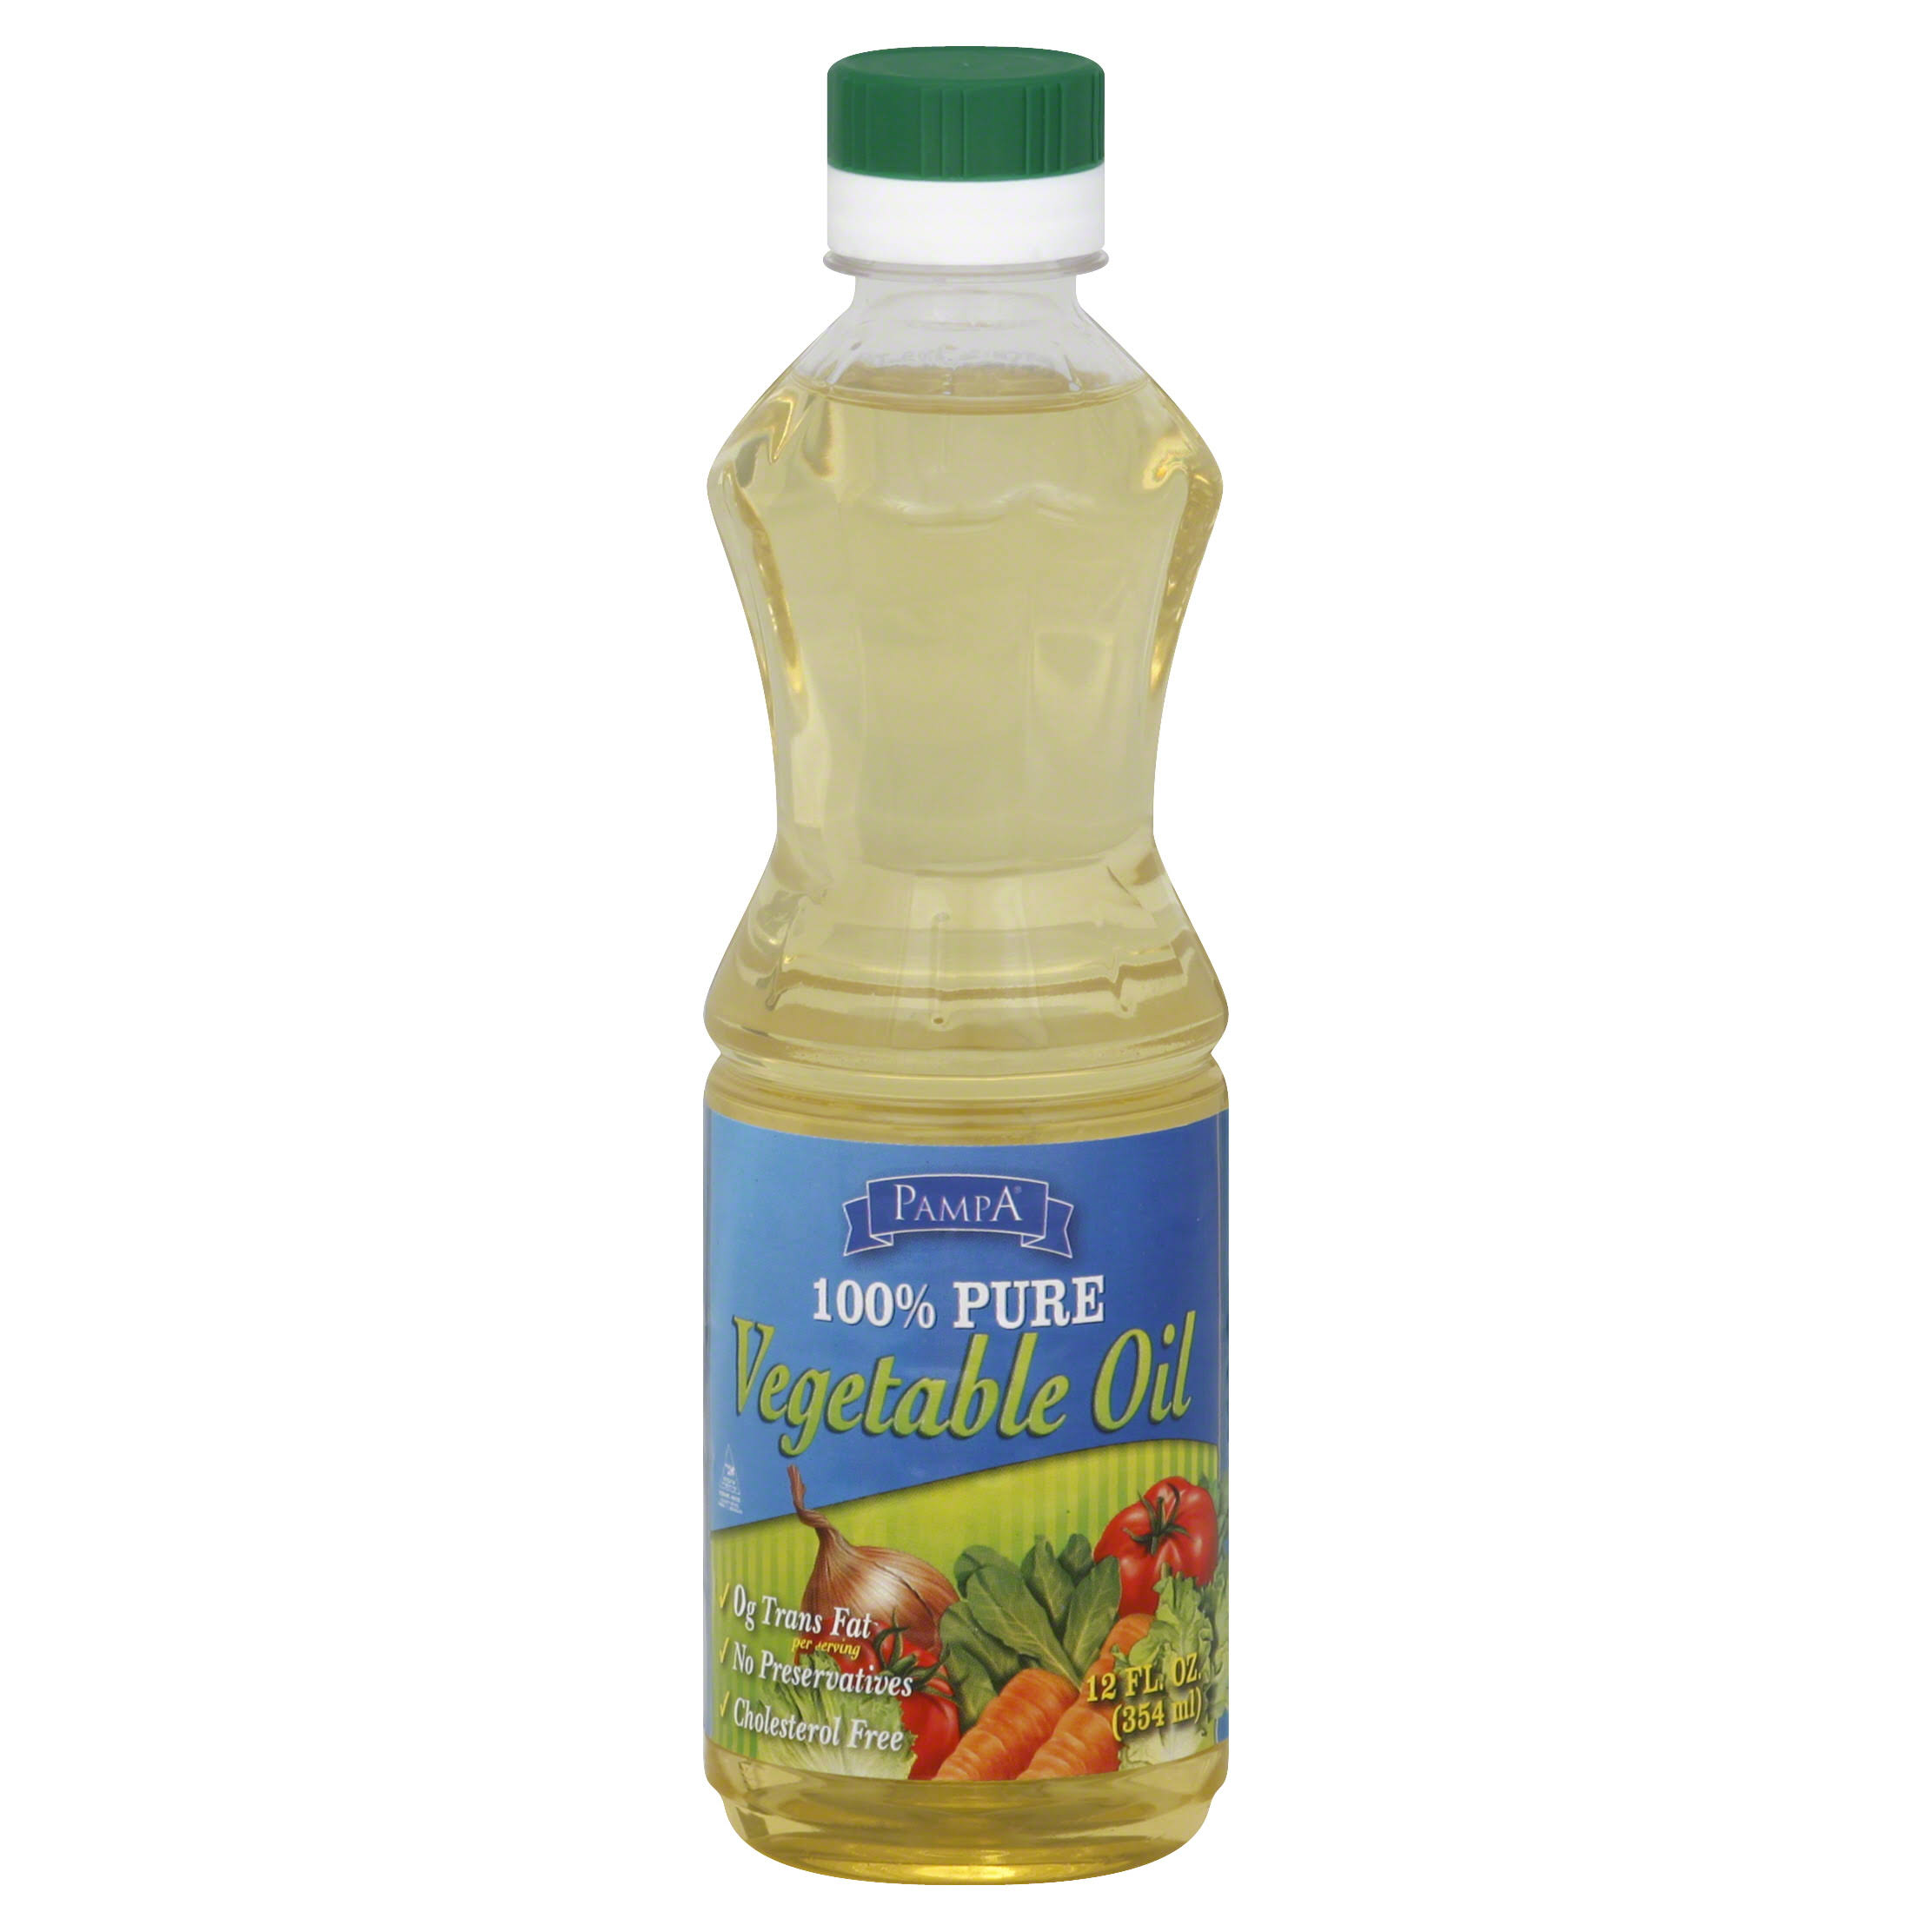 Pampa Vegetable Oil, 100% Pure - 12 fl oz